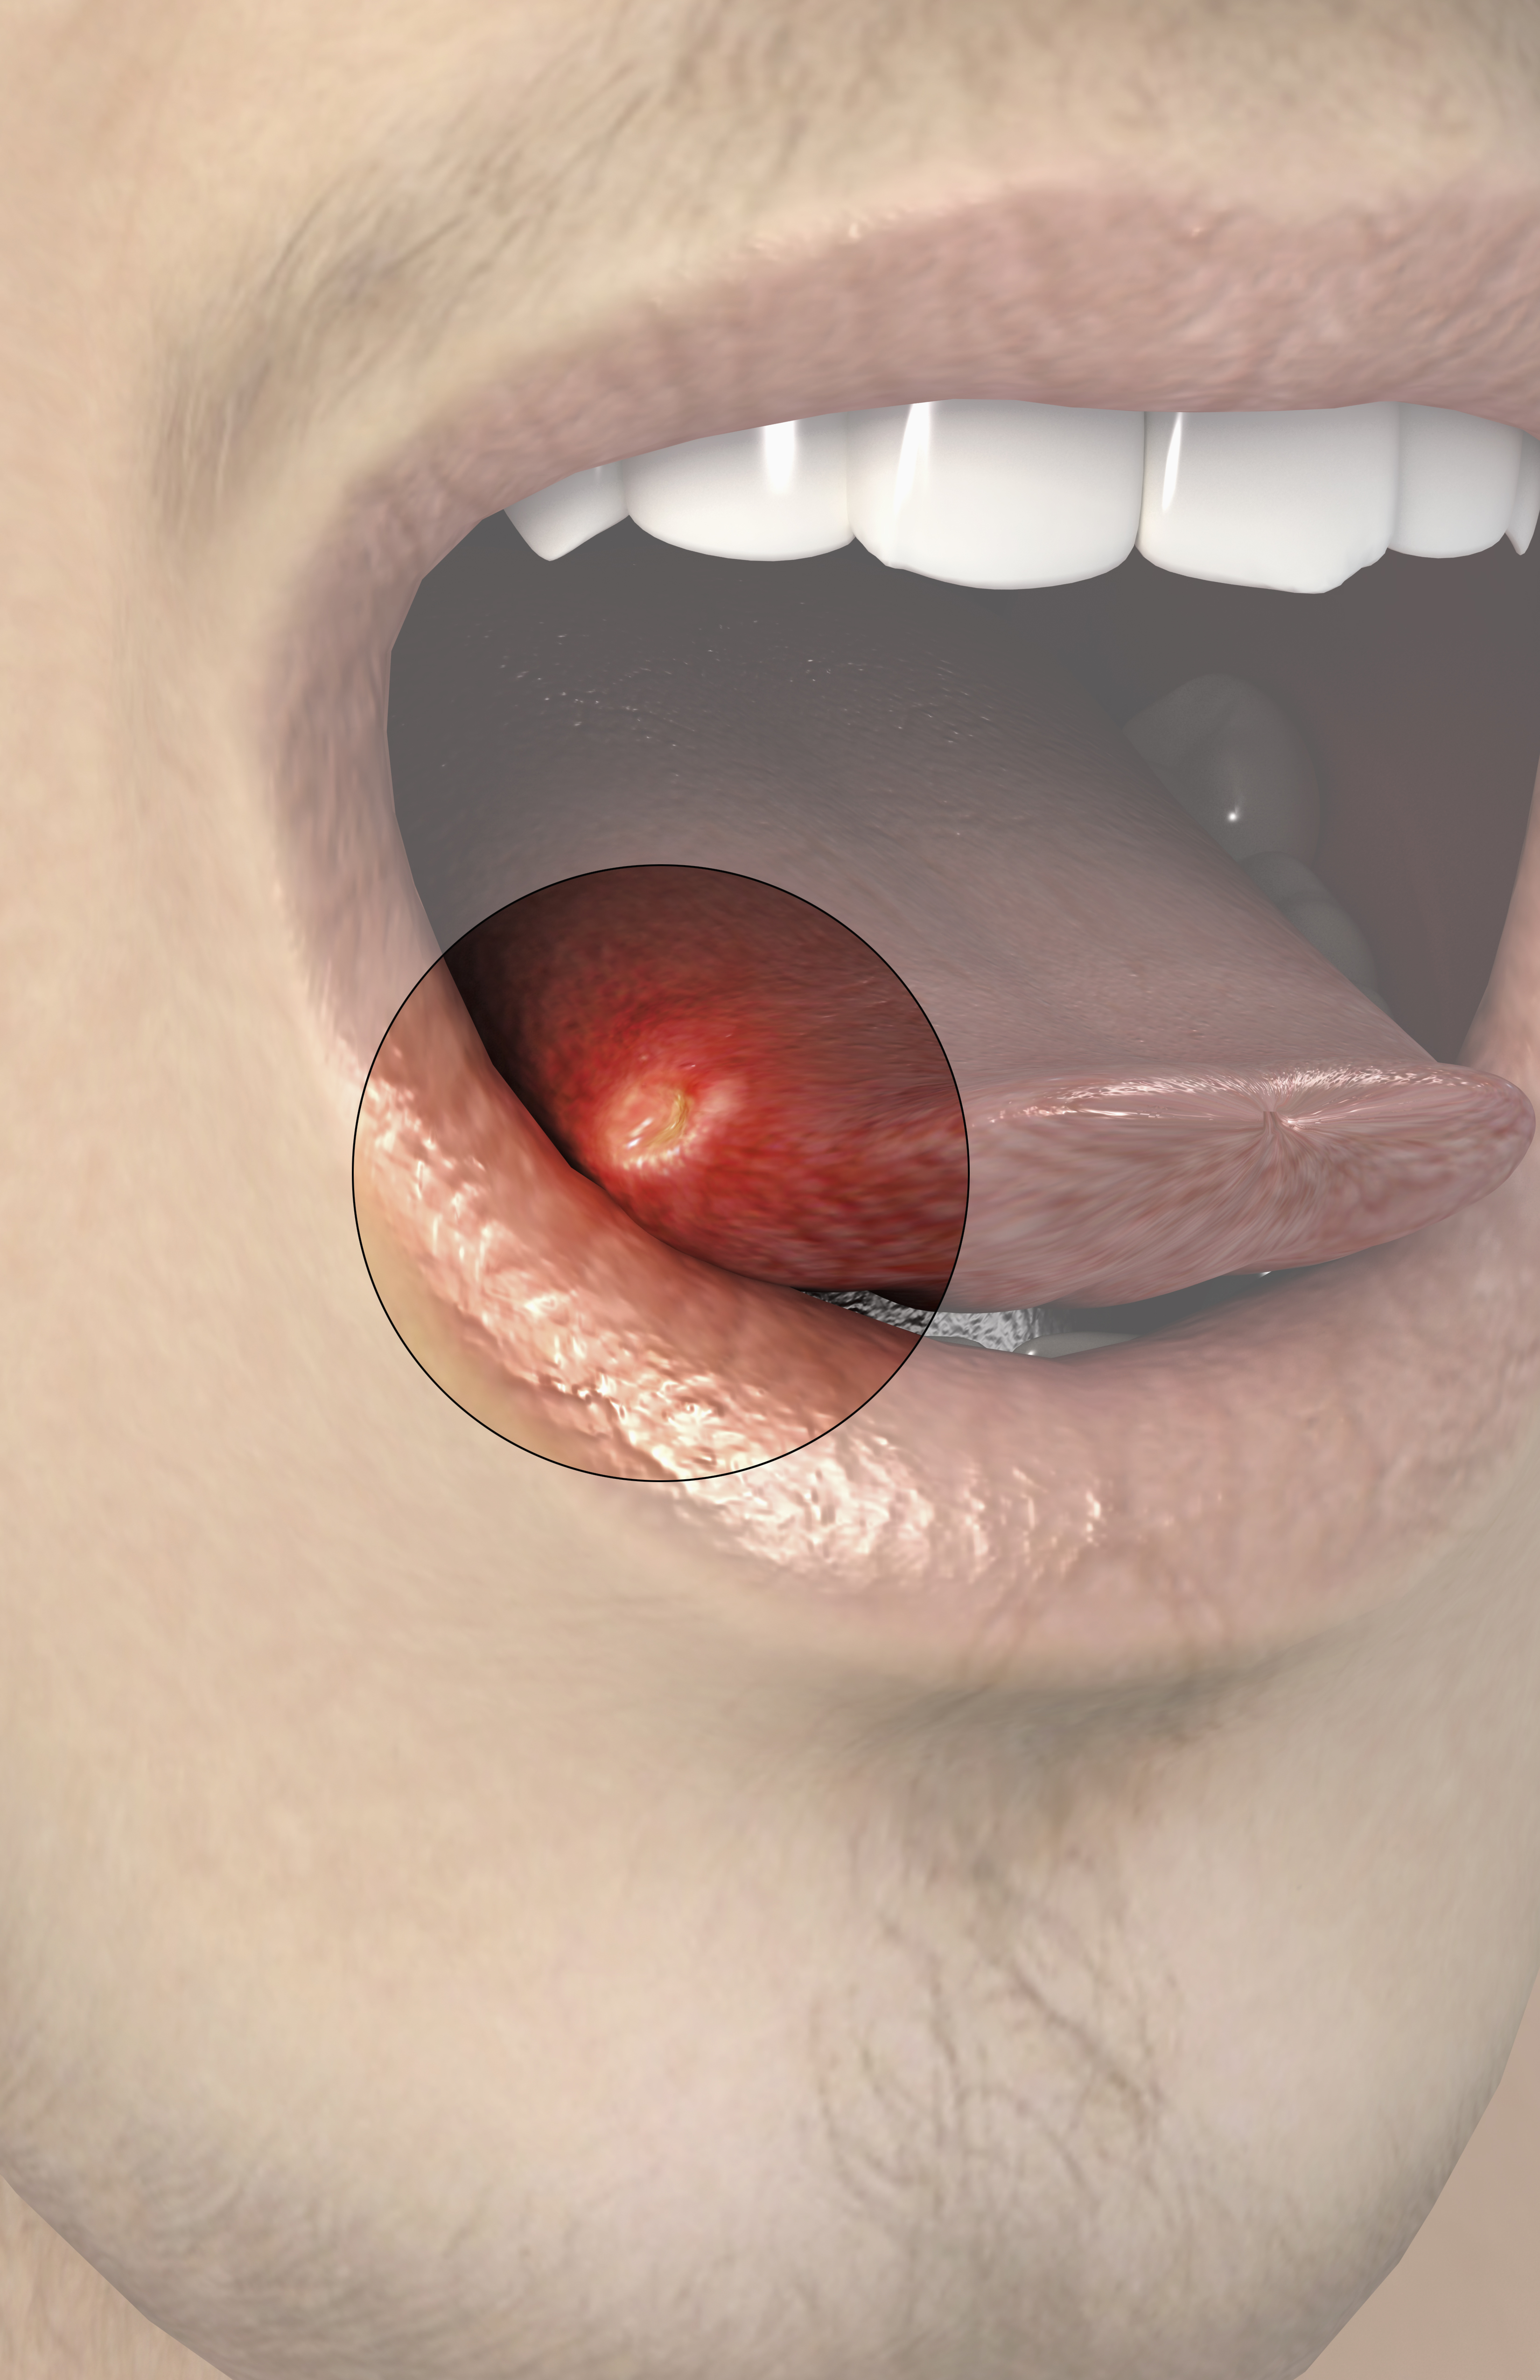 Bottom of tongue sore after kissing being sexual orientation